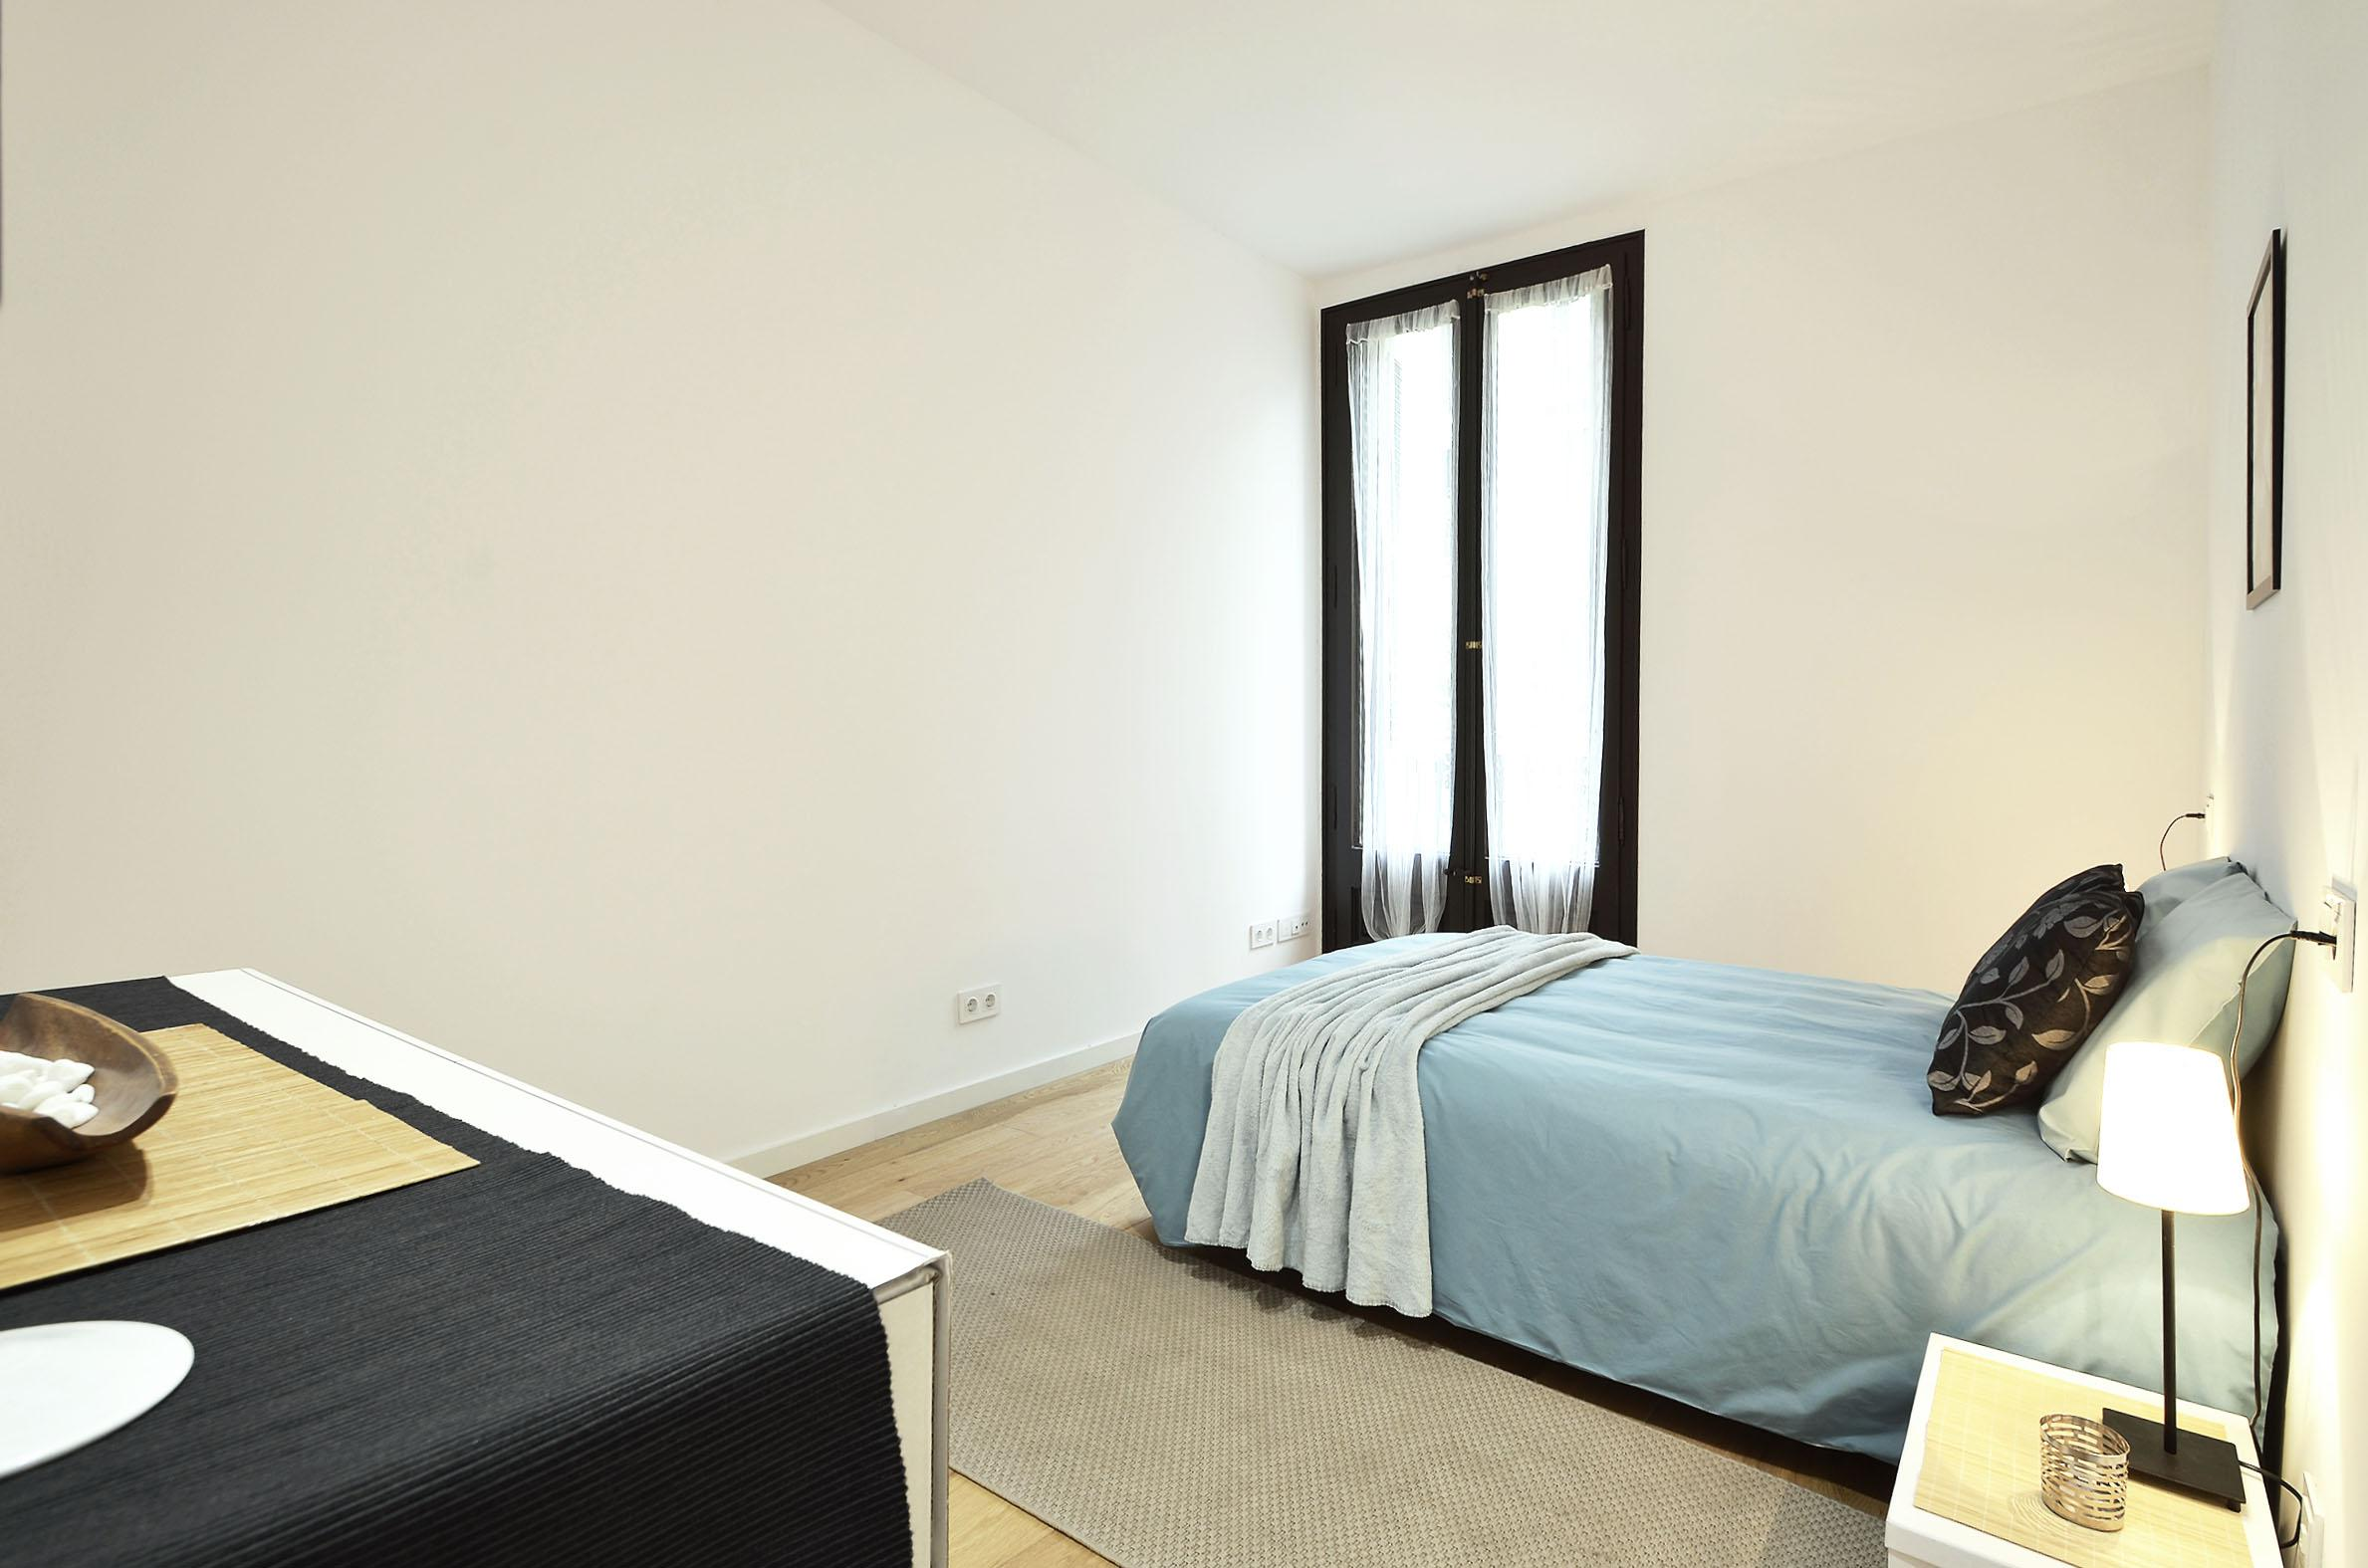 173872 Apartment for sale in Eixample, Old Left Eixample 22